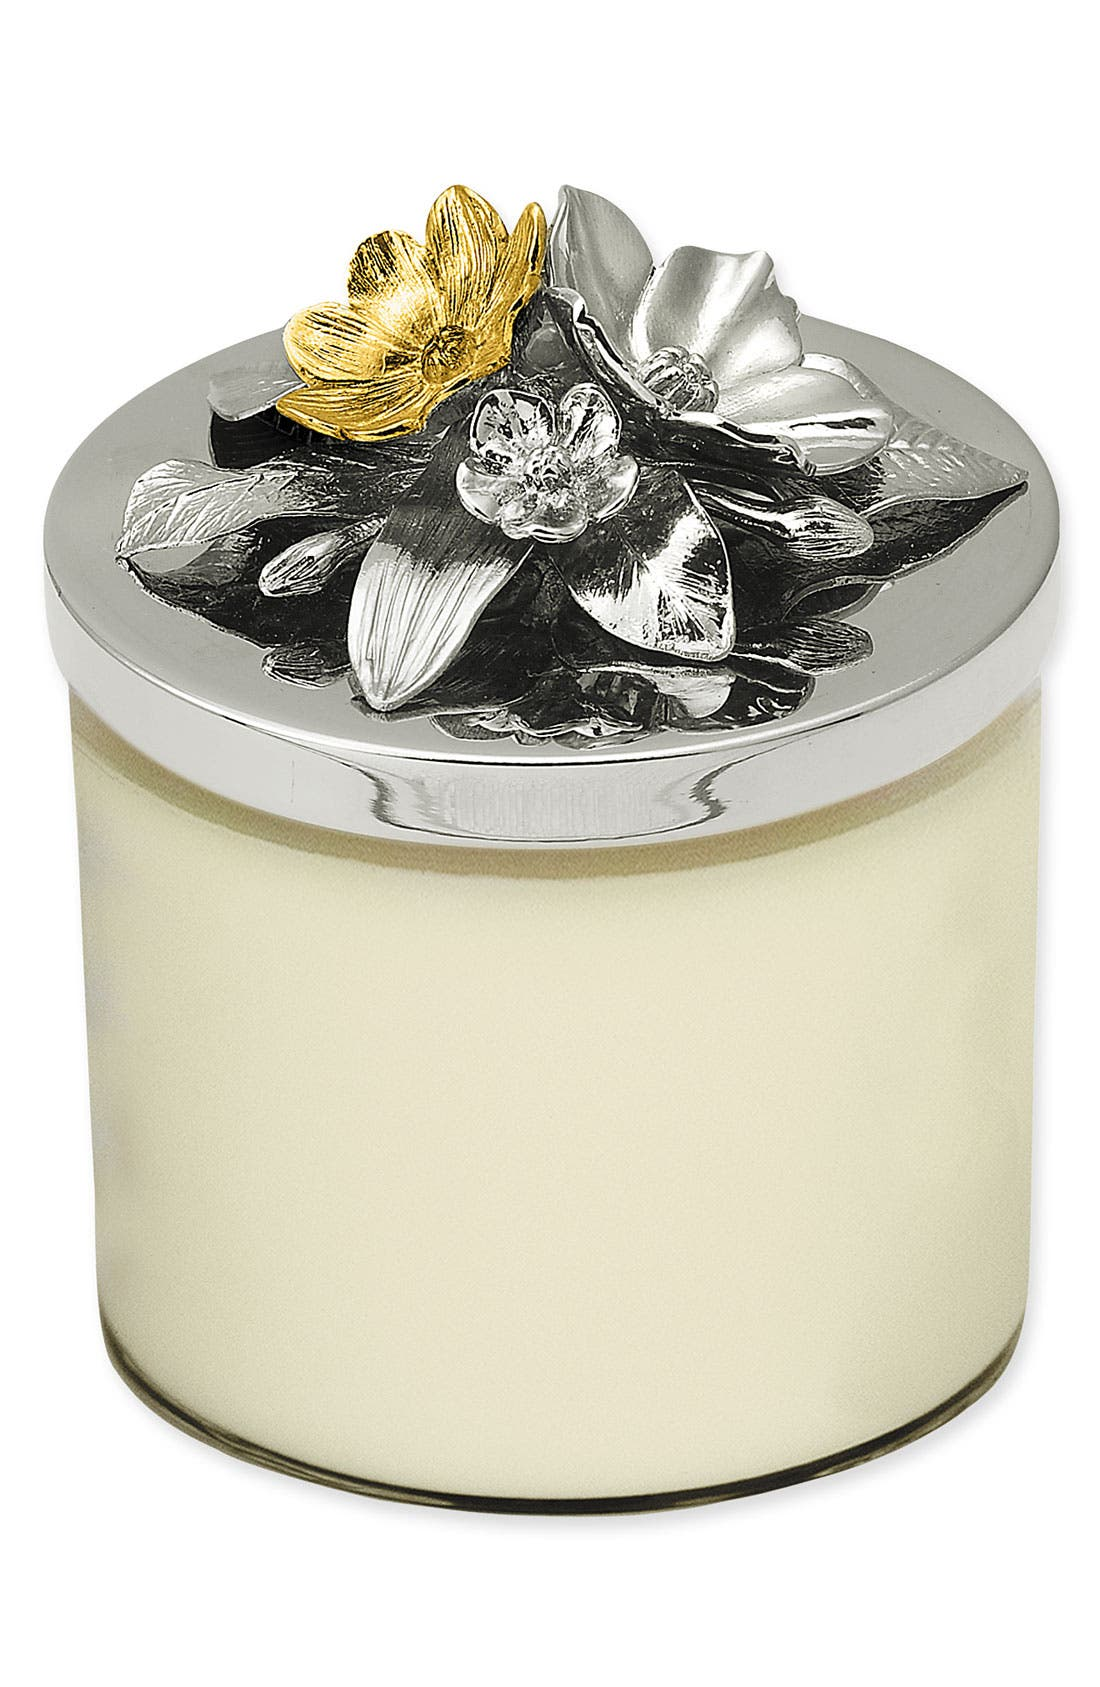 Alternate Image 1 Selected - Michael Aram 'Garland' Soy Wax Candle